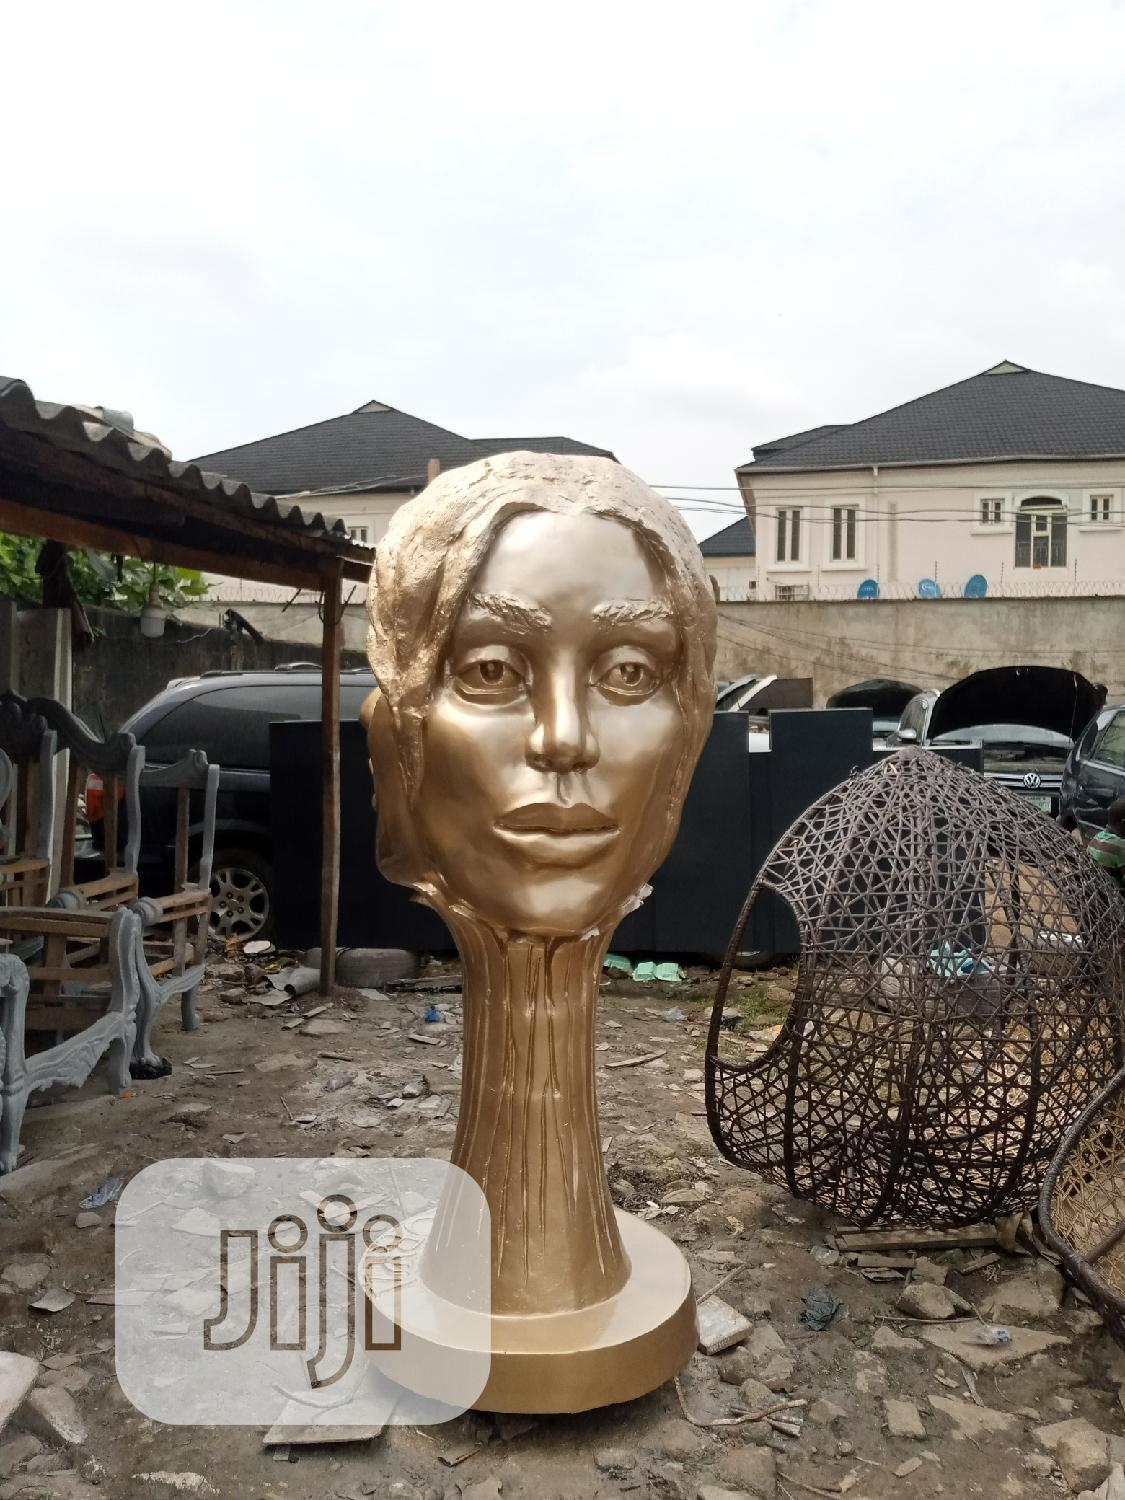 Giant Outdoor Sculpture | Arts & Crafts for sale in Shomolu, Lagos State, Nigeria